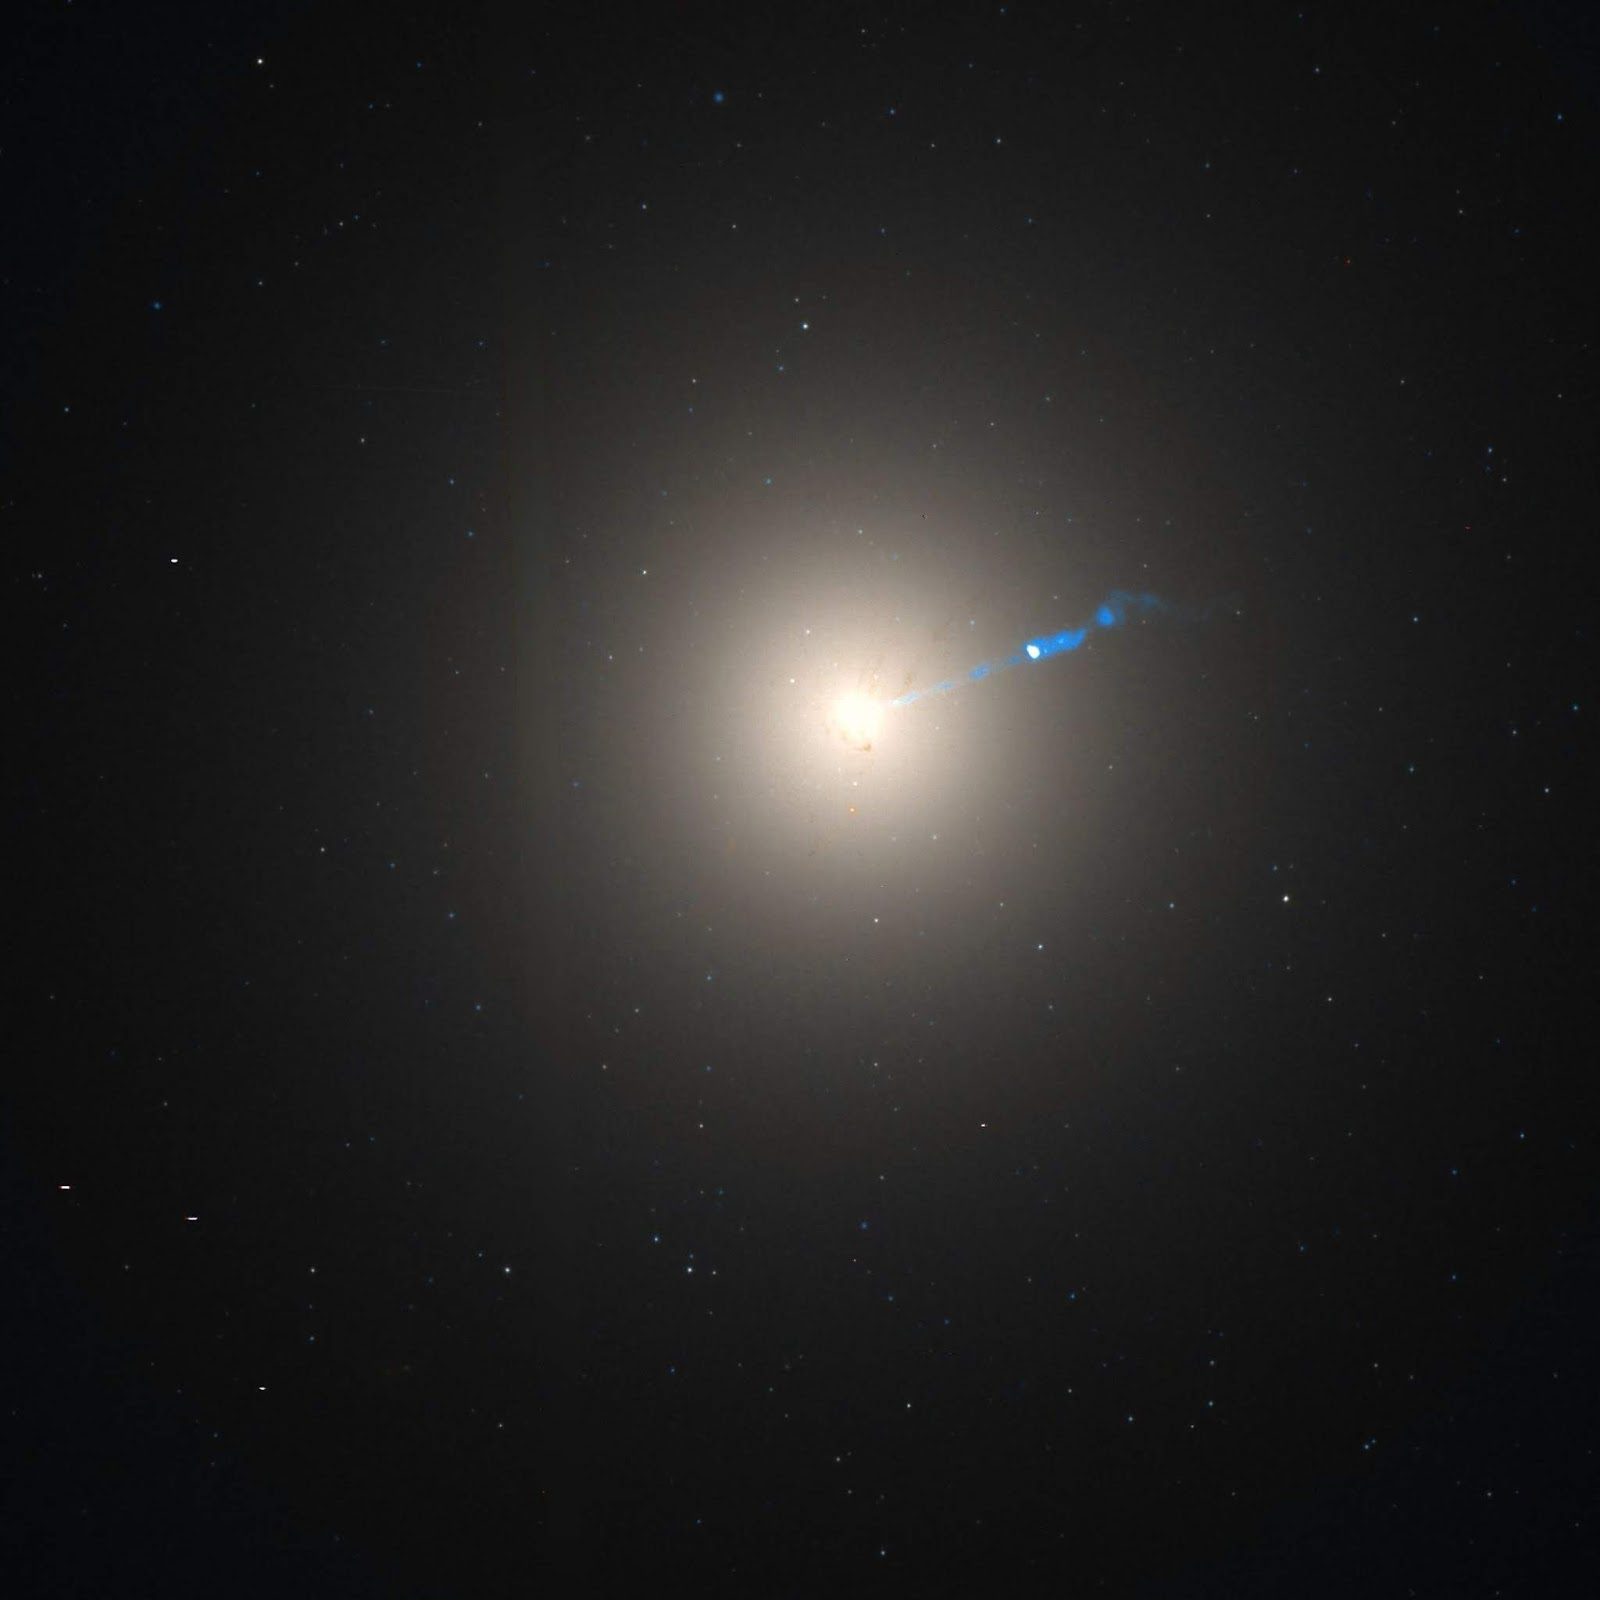 Messier 87 galaxy far away 53 billion light years